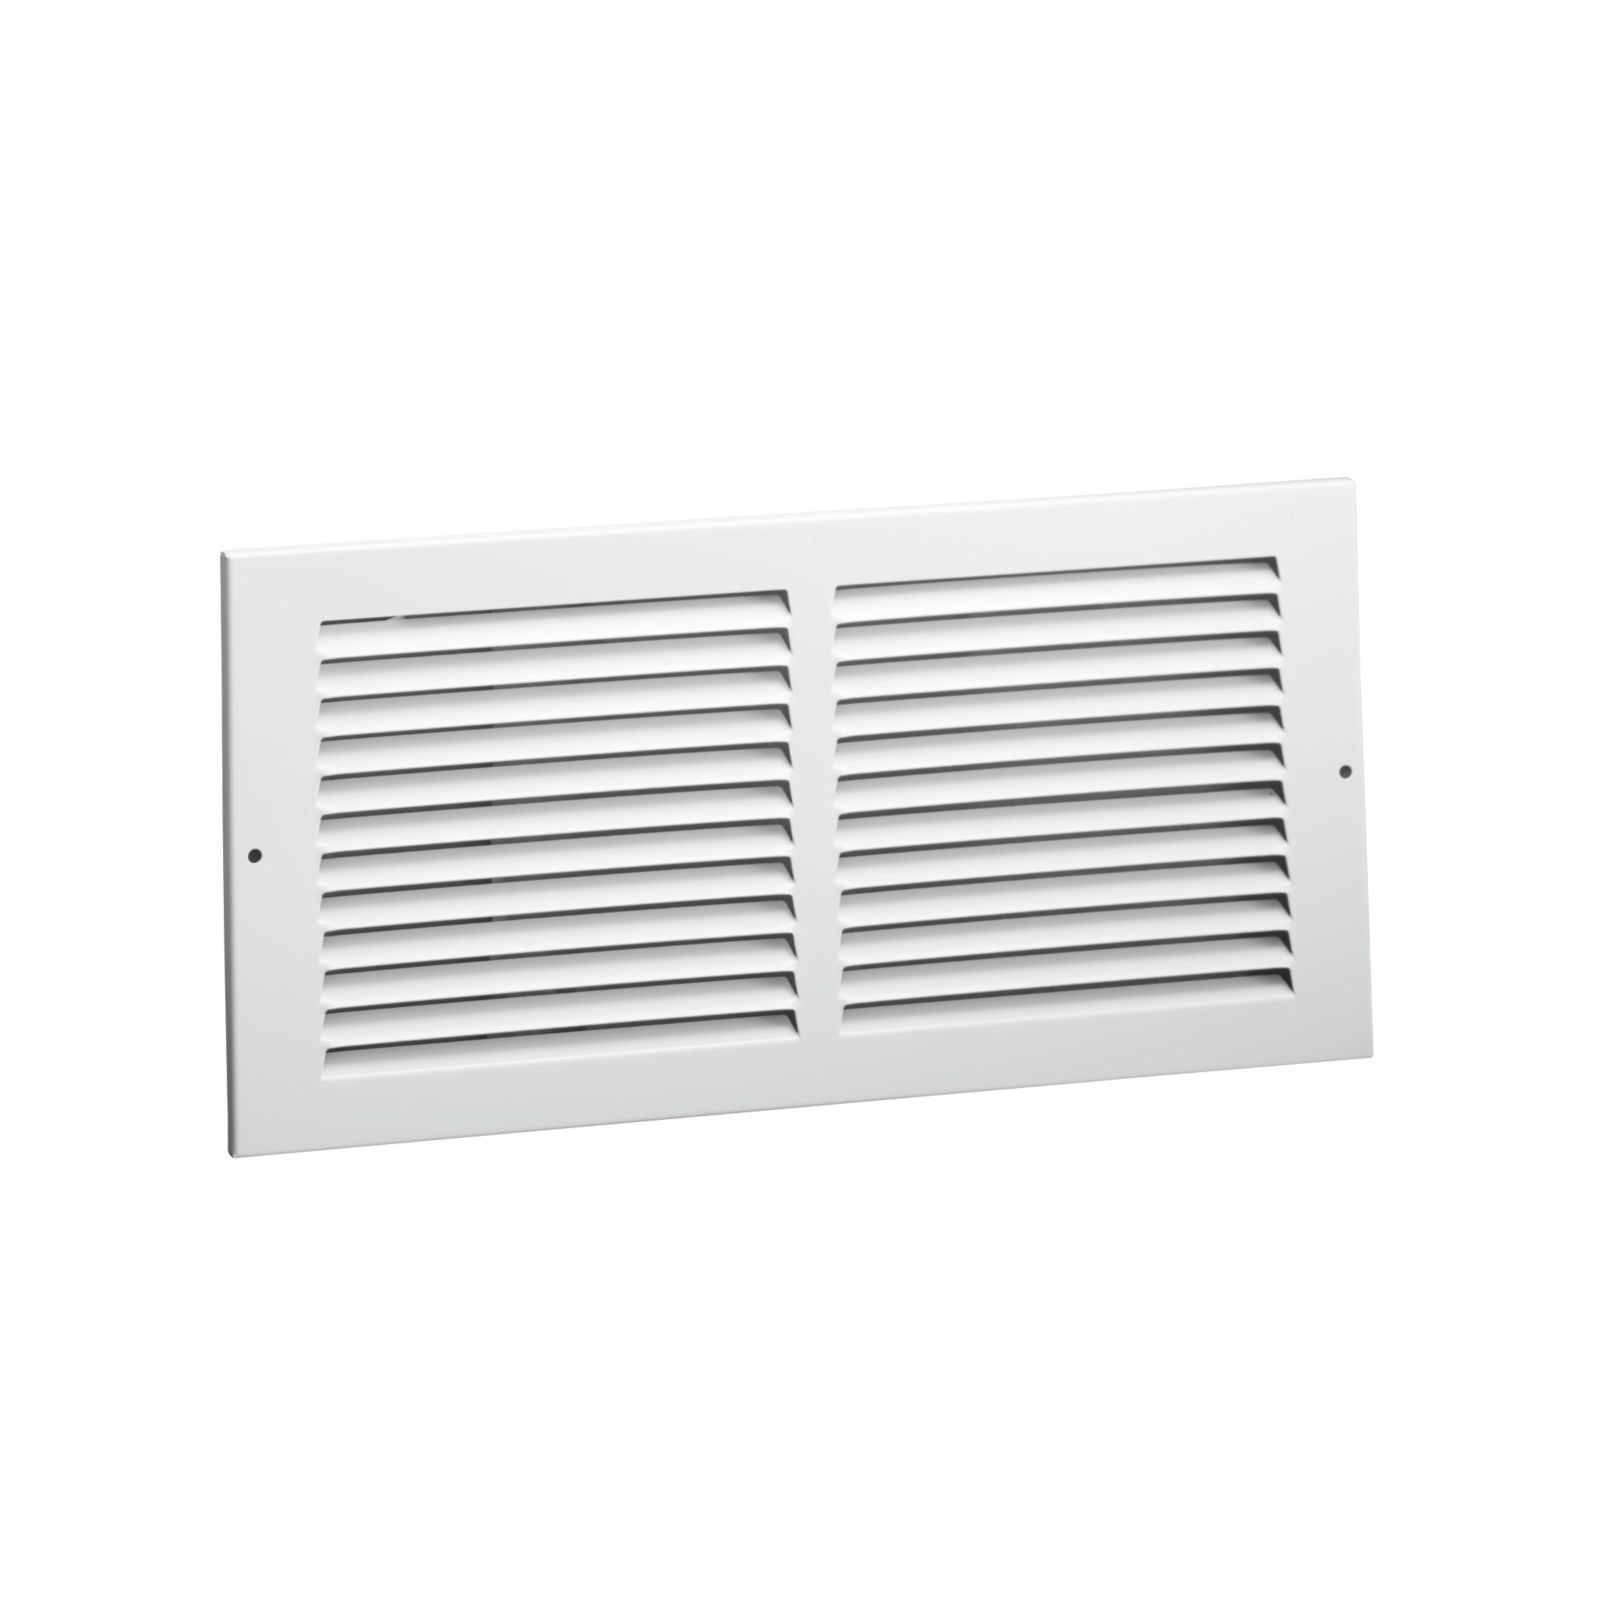 "Hart & Cooley 043327 - #672 Steel Return Air Grille, White Finish, 14"" X 10"""